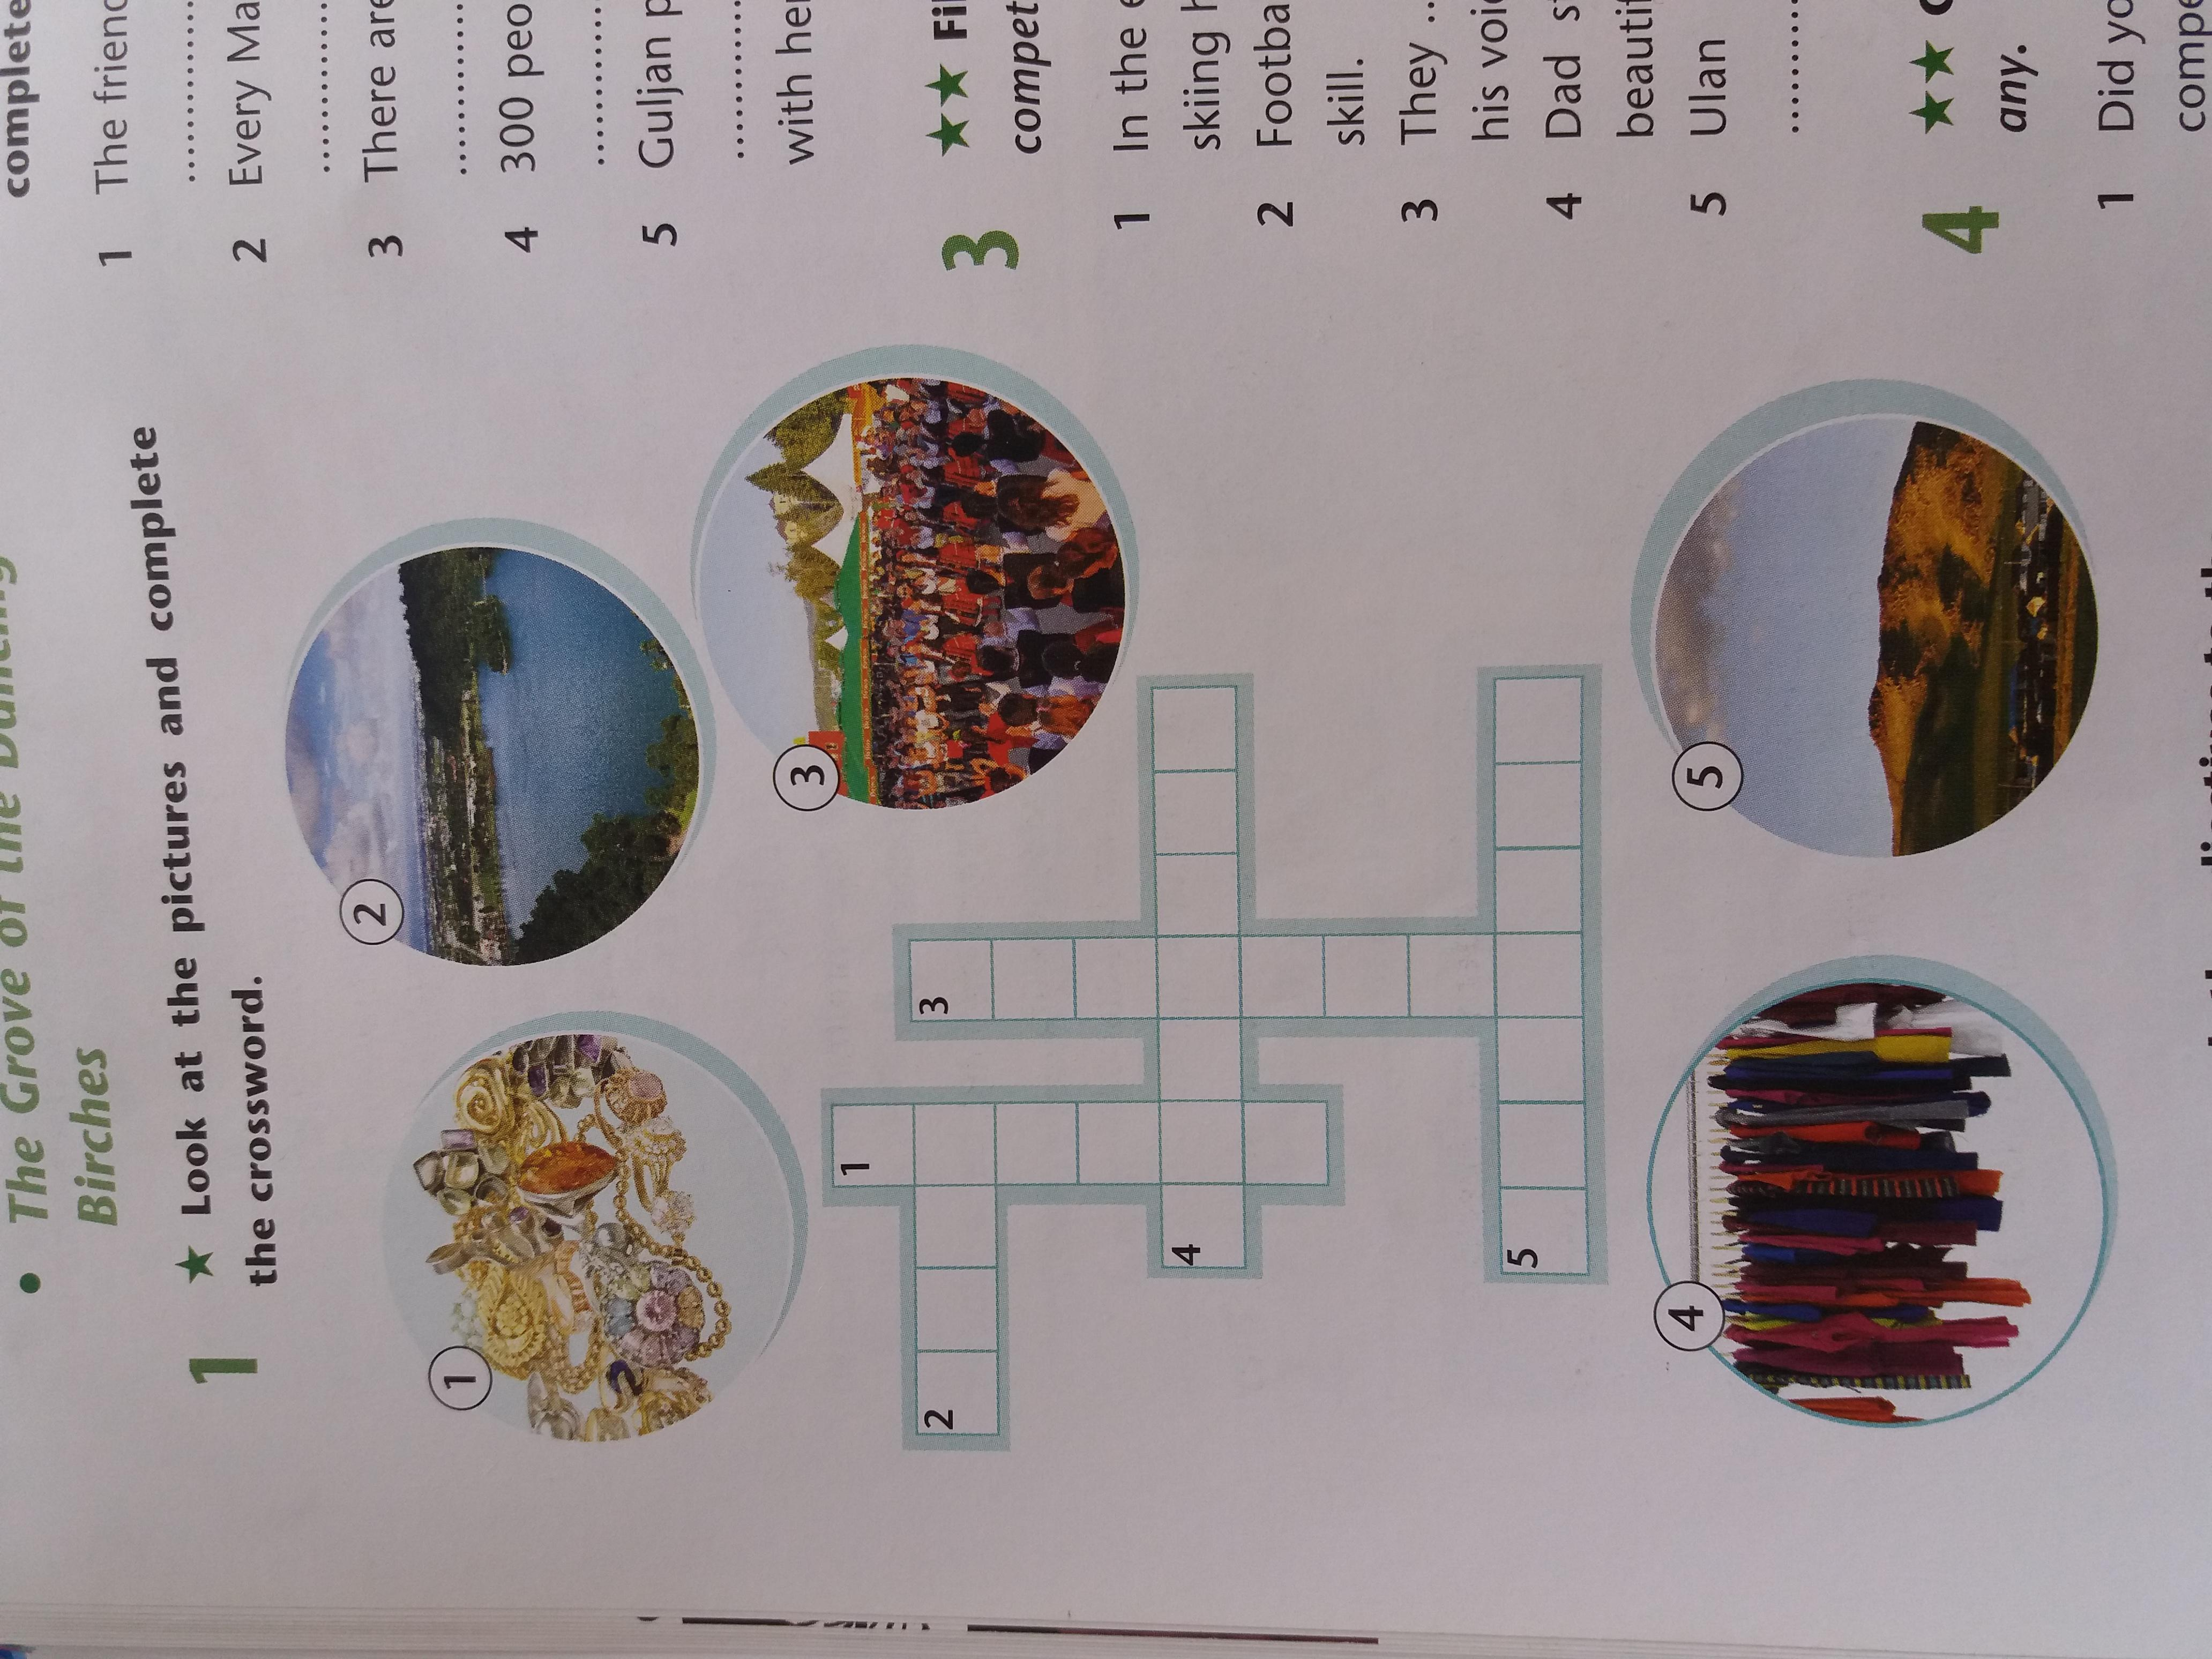 Look at the pictures and complete the crossword